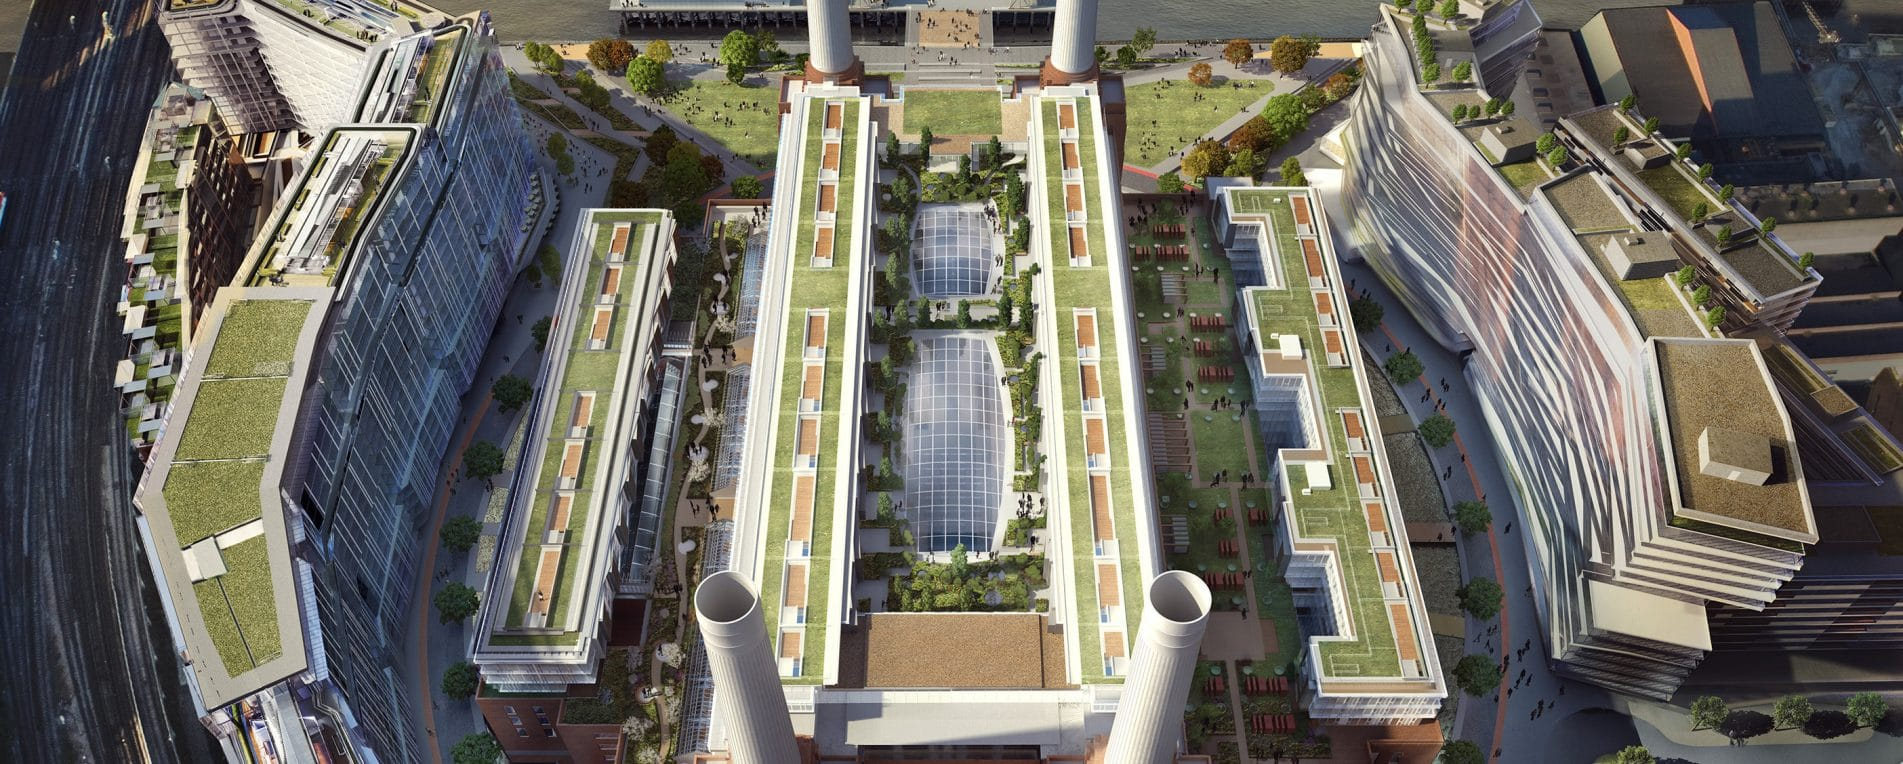 iconic battersea power station - roof gardens revealed